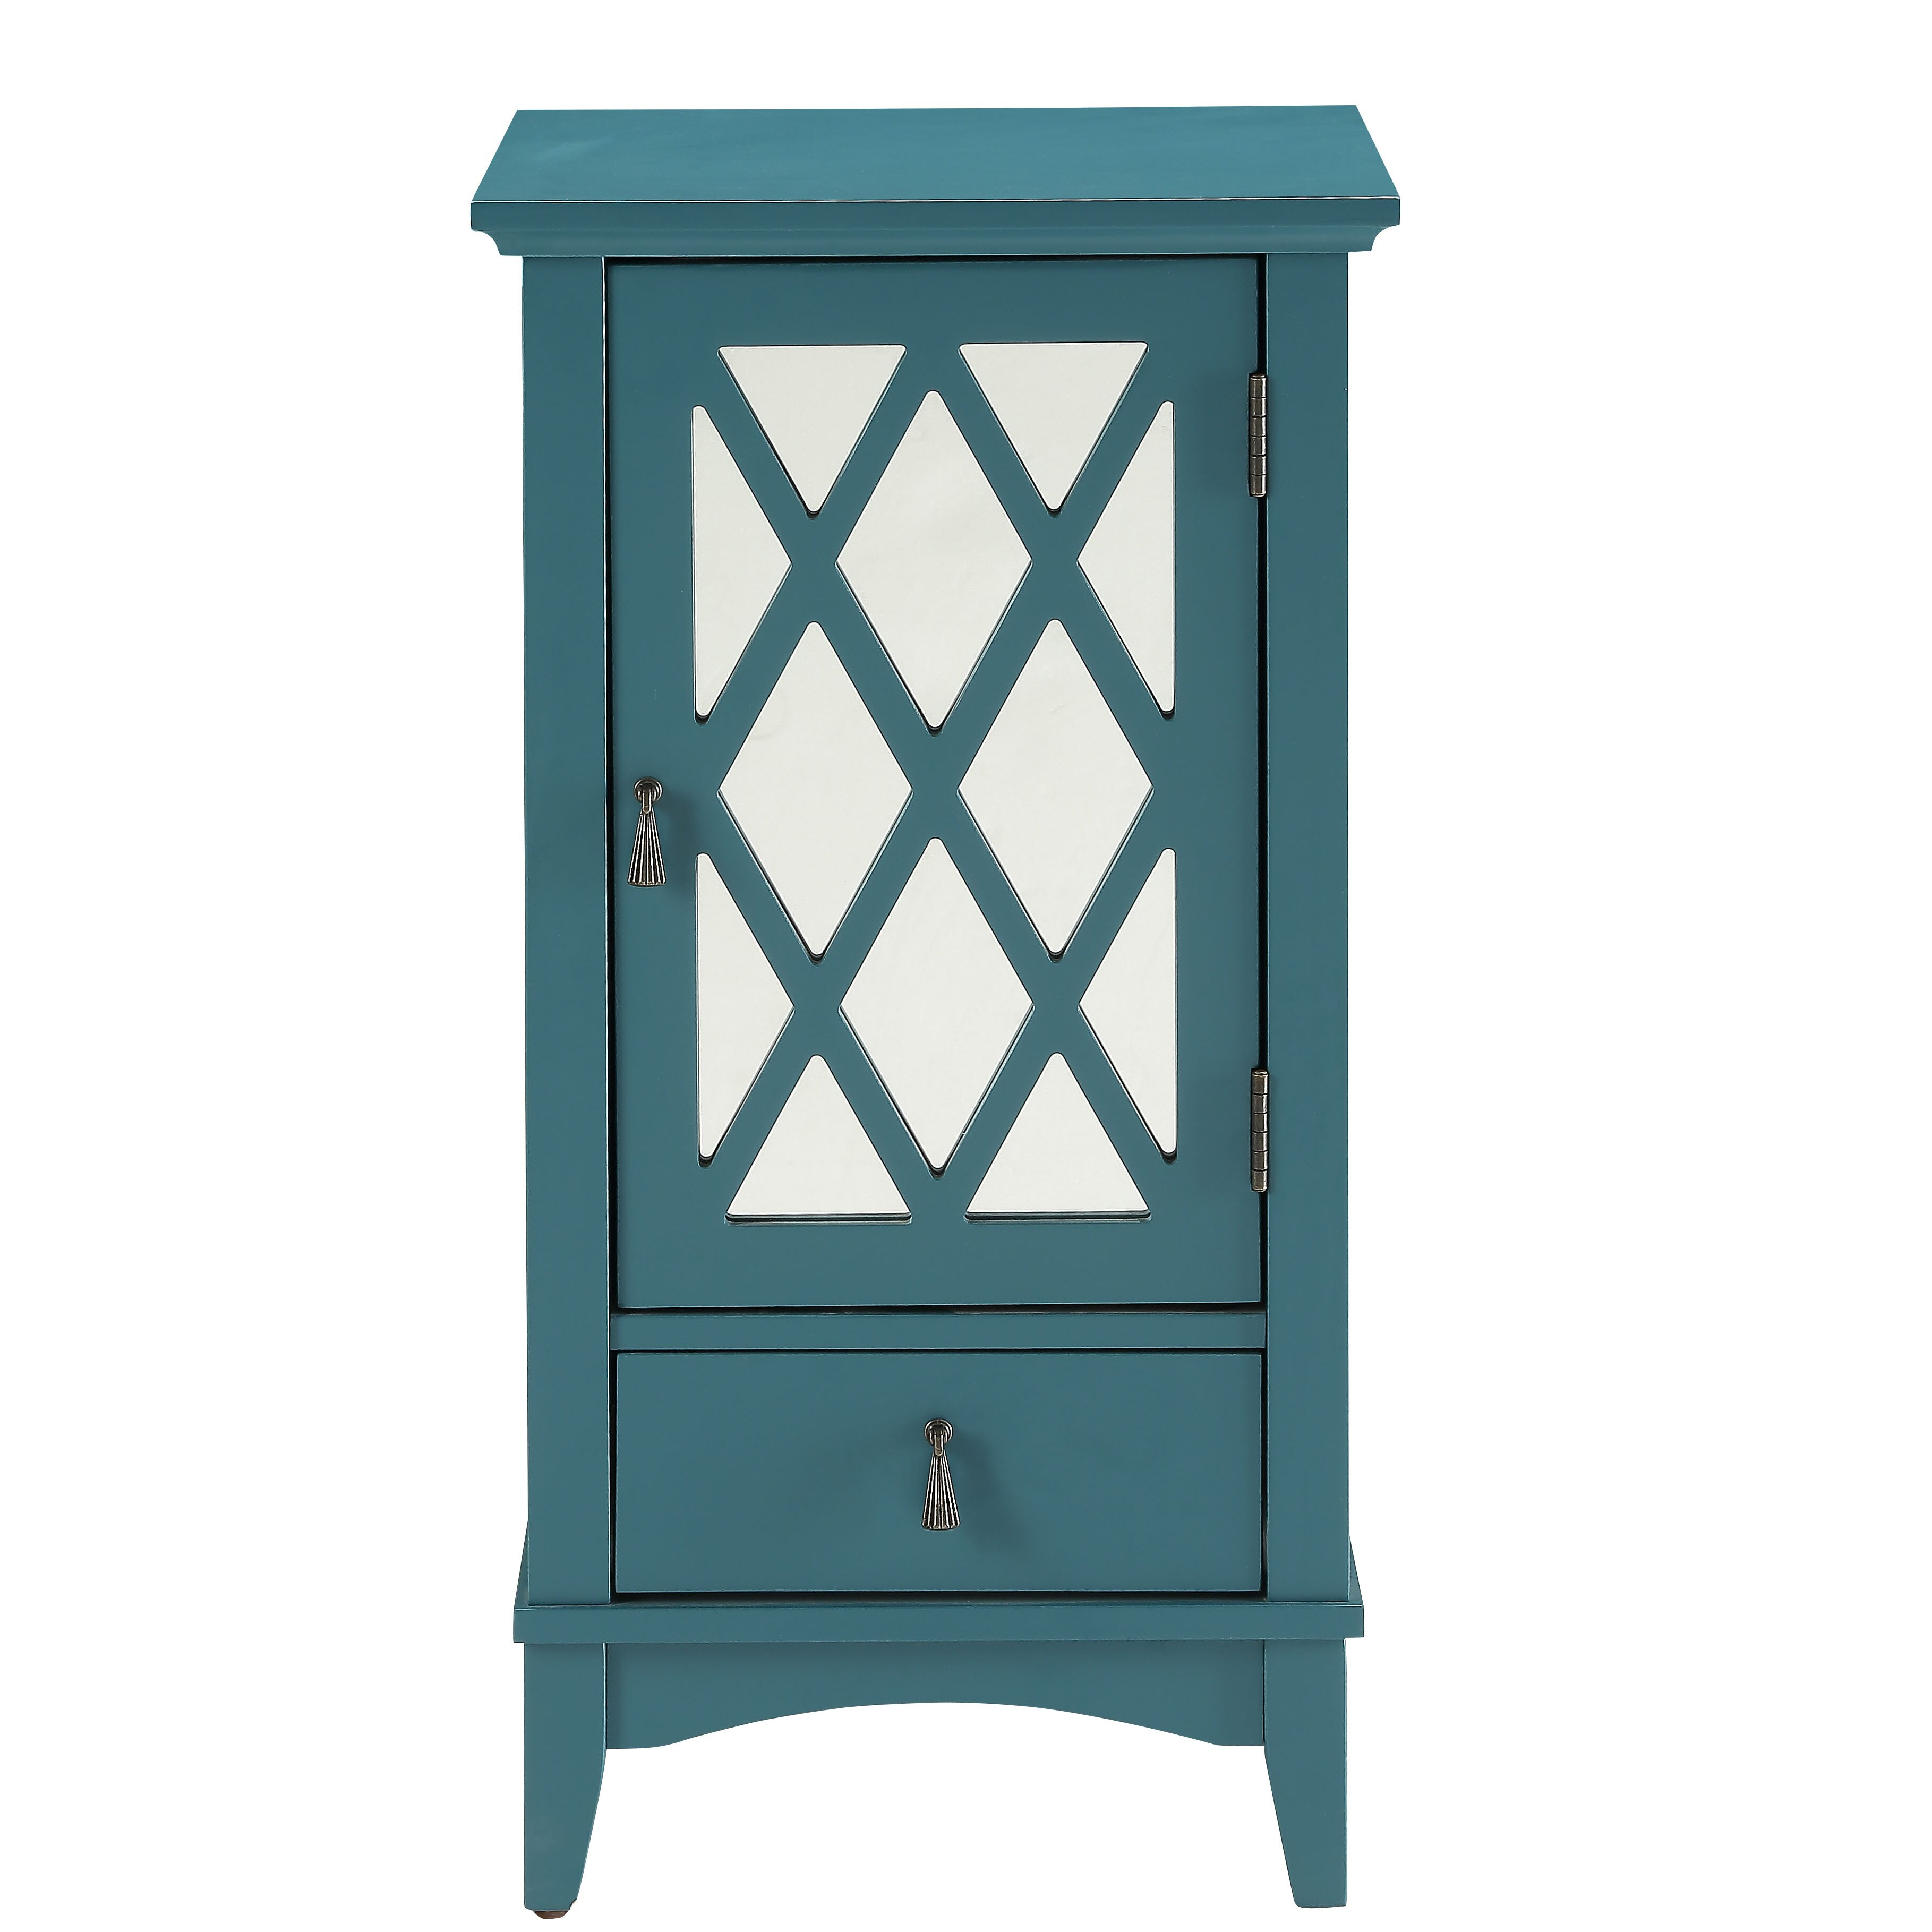 Acme furniture ceara floor cabinet wayfair for Acme kitchen cabinets